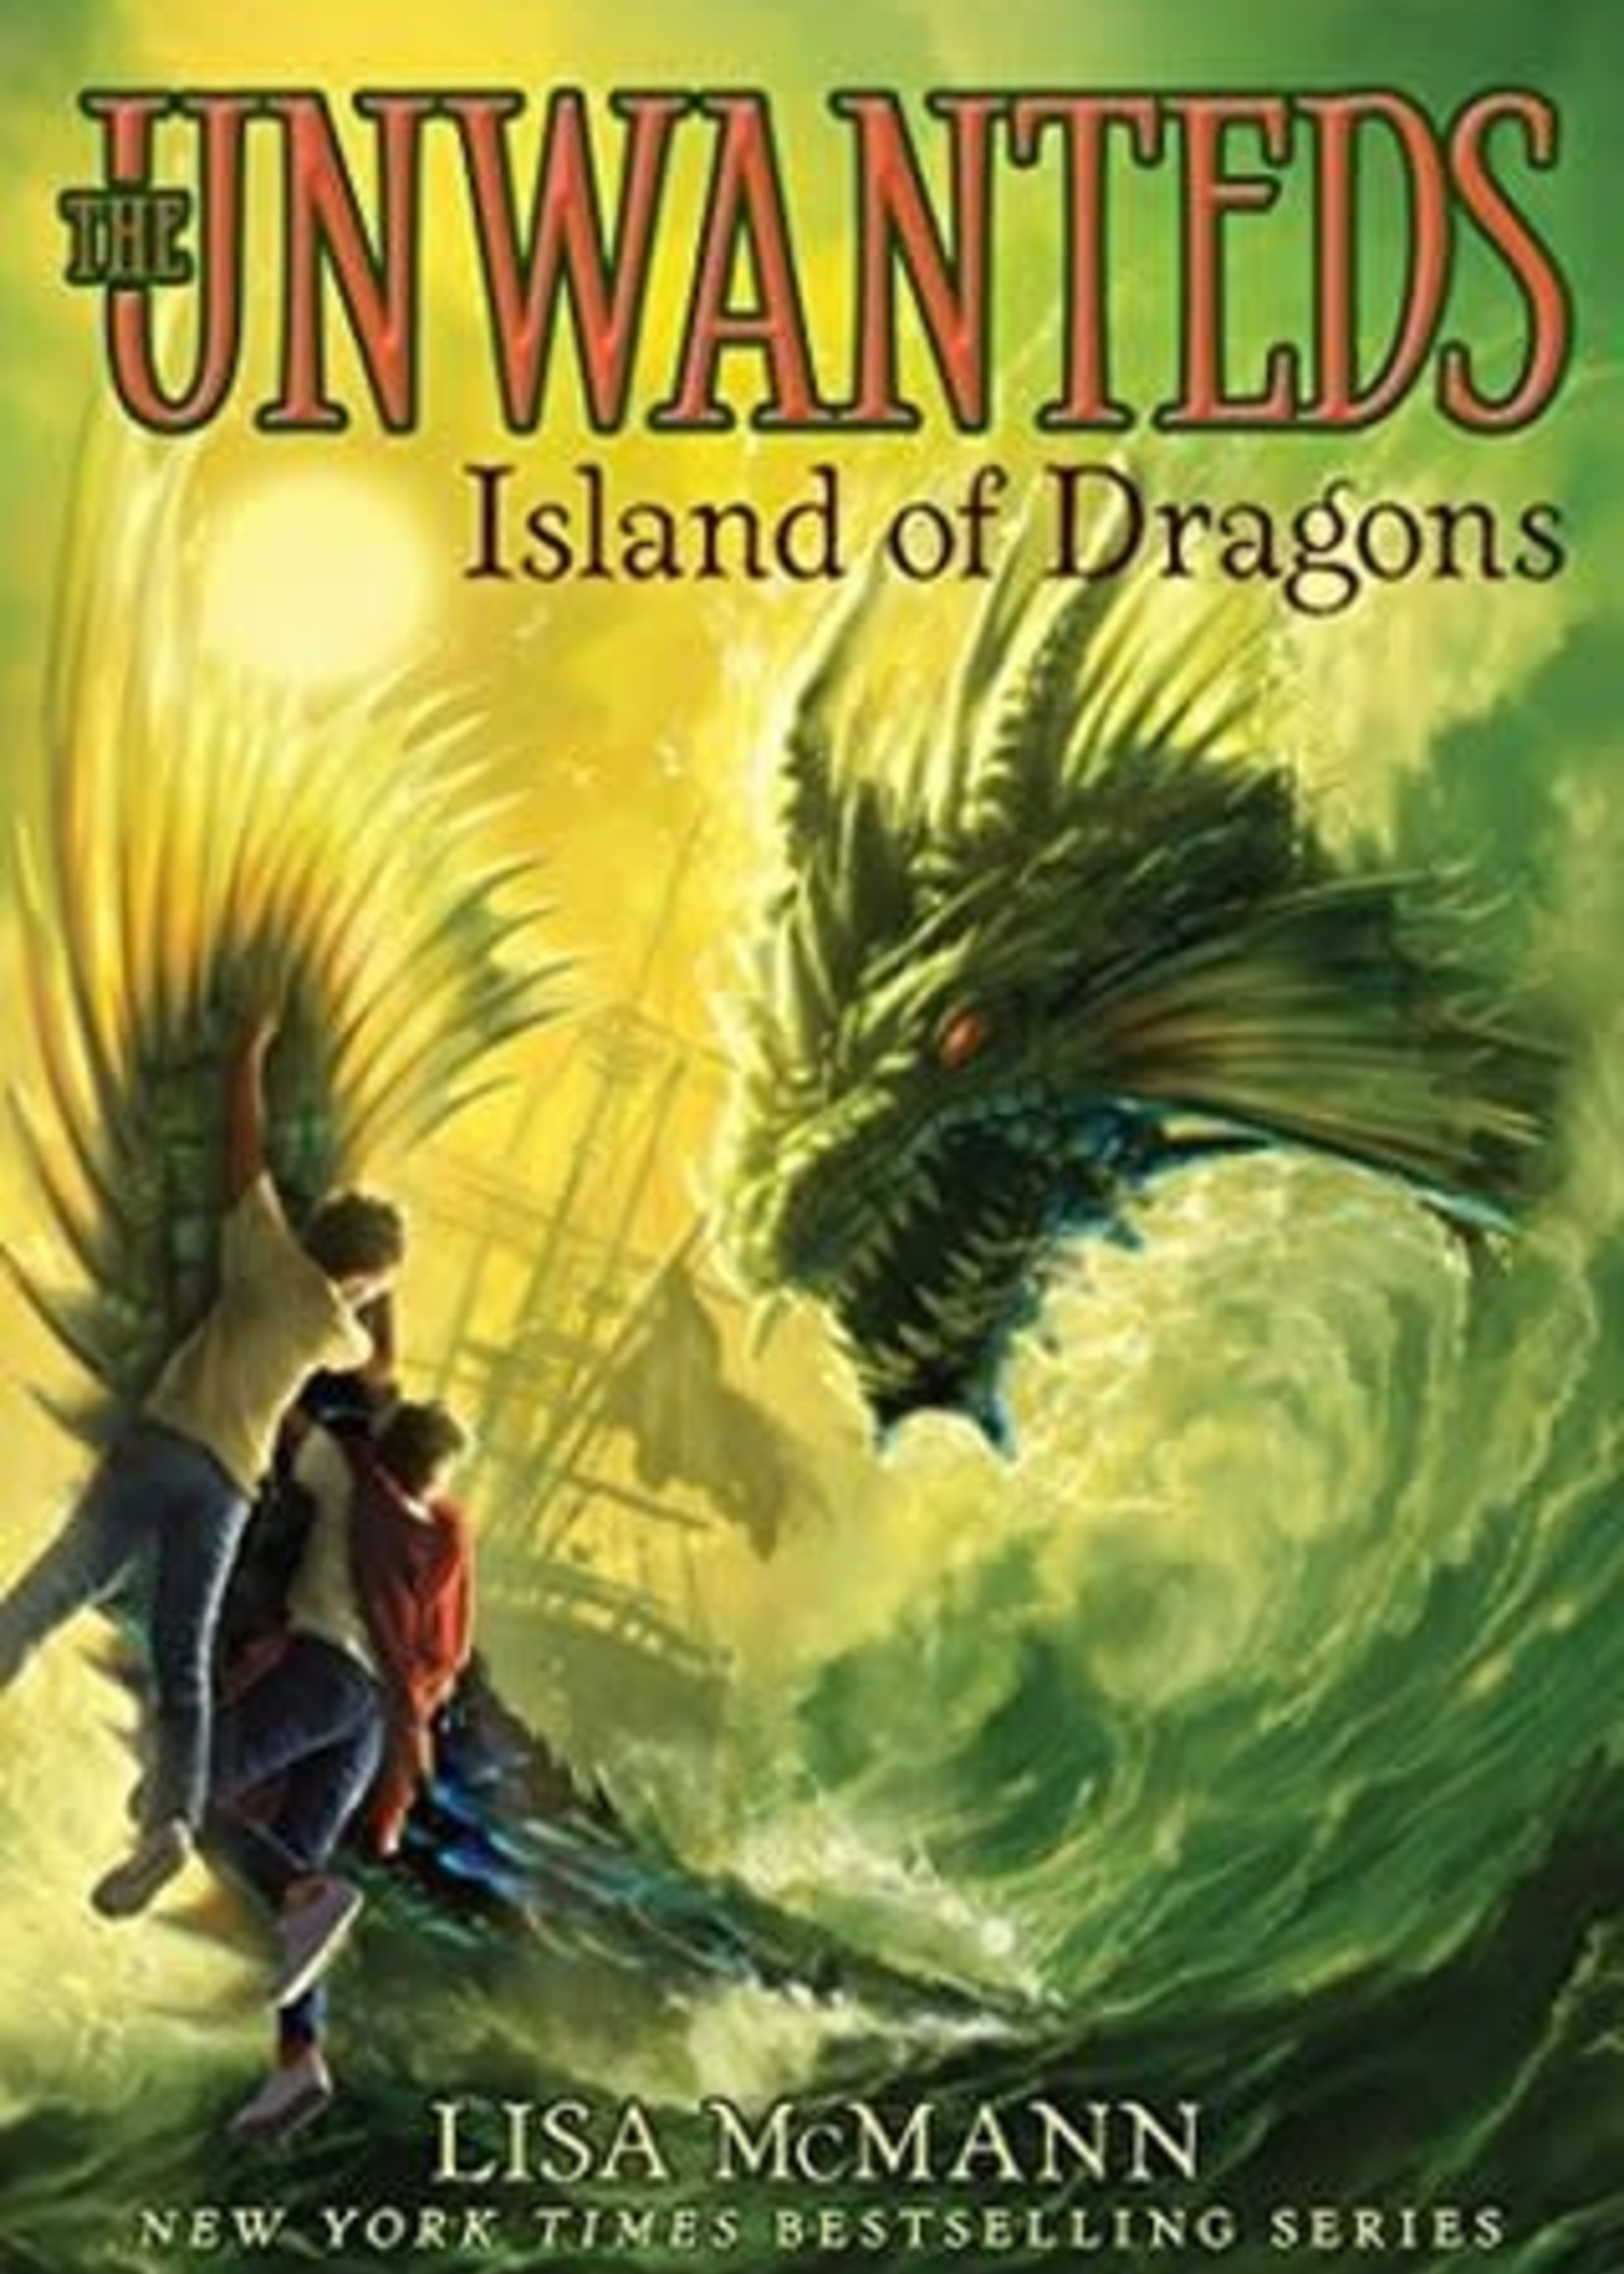 Island of Dragons (Unwanteds #7) by Lisa McMann